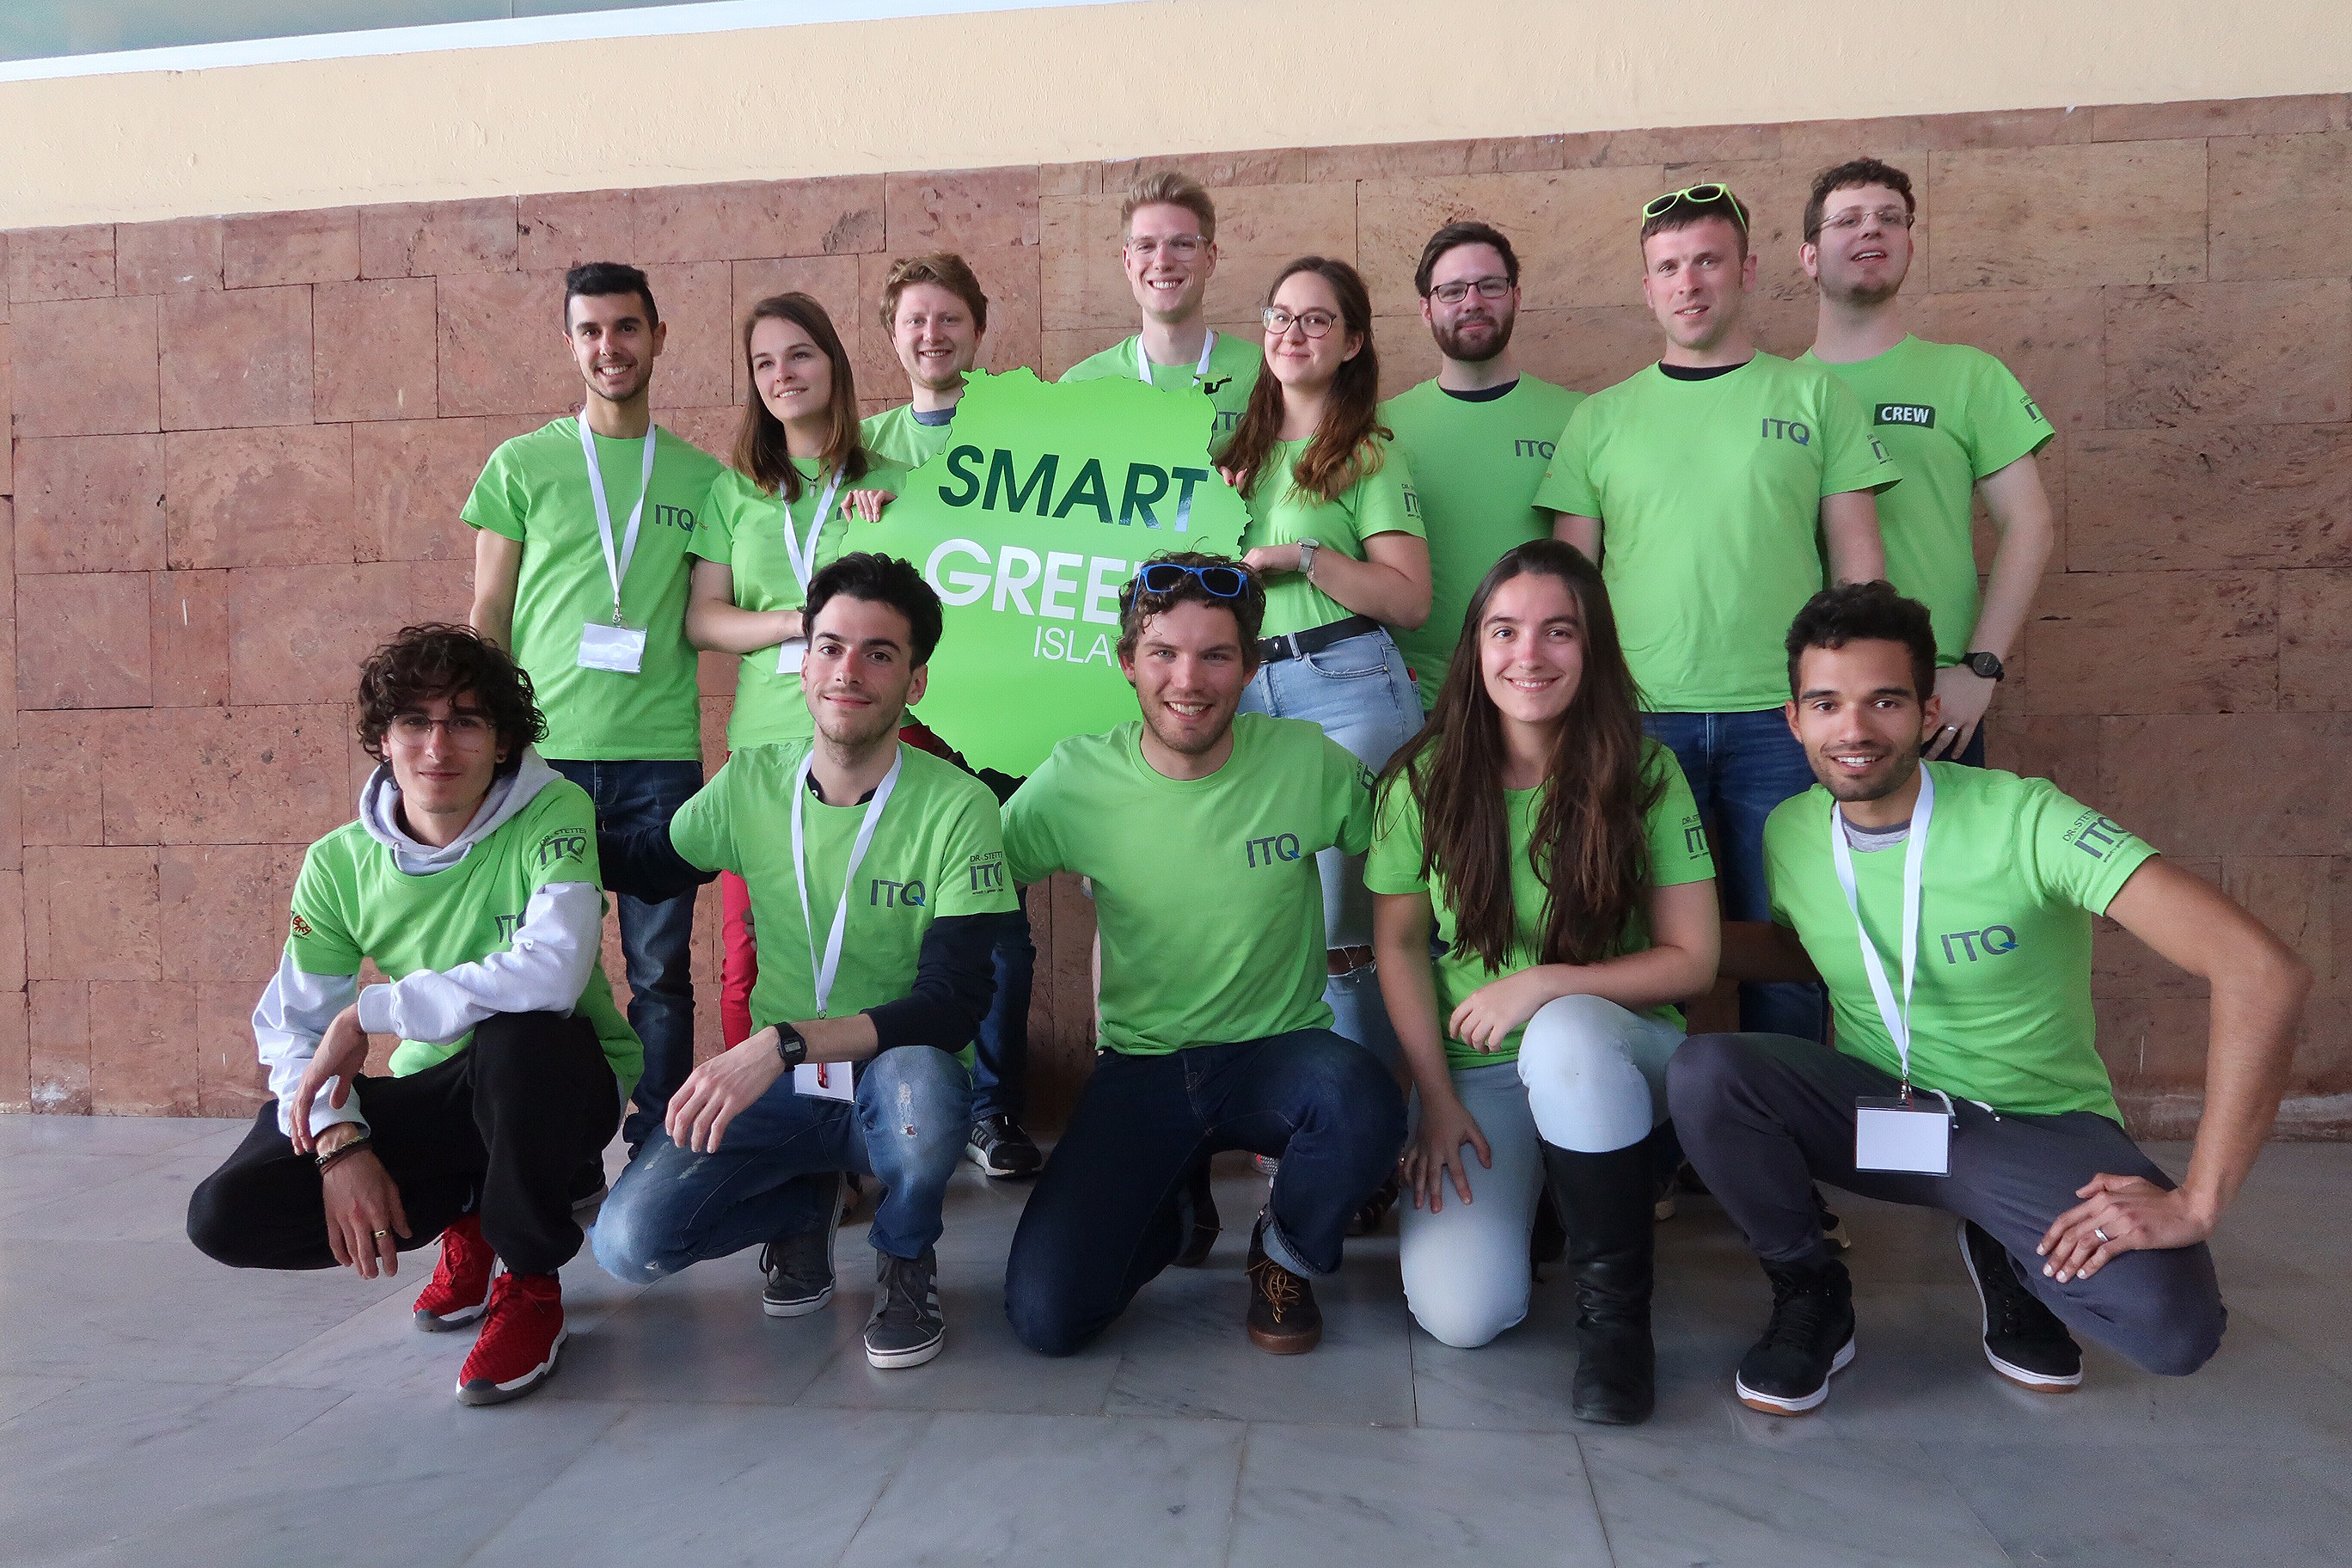 Smart Green Island Makeathon 2019 Team